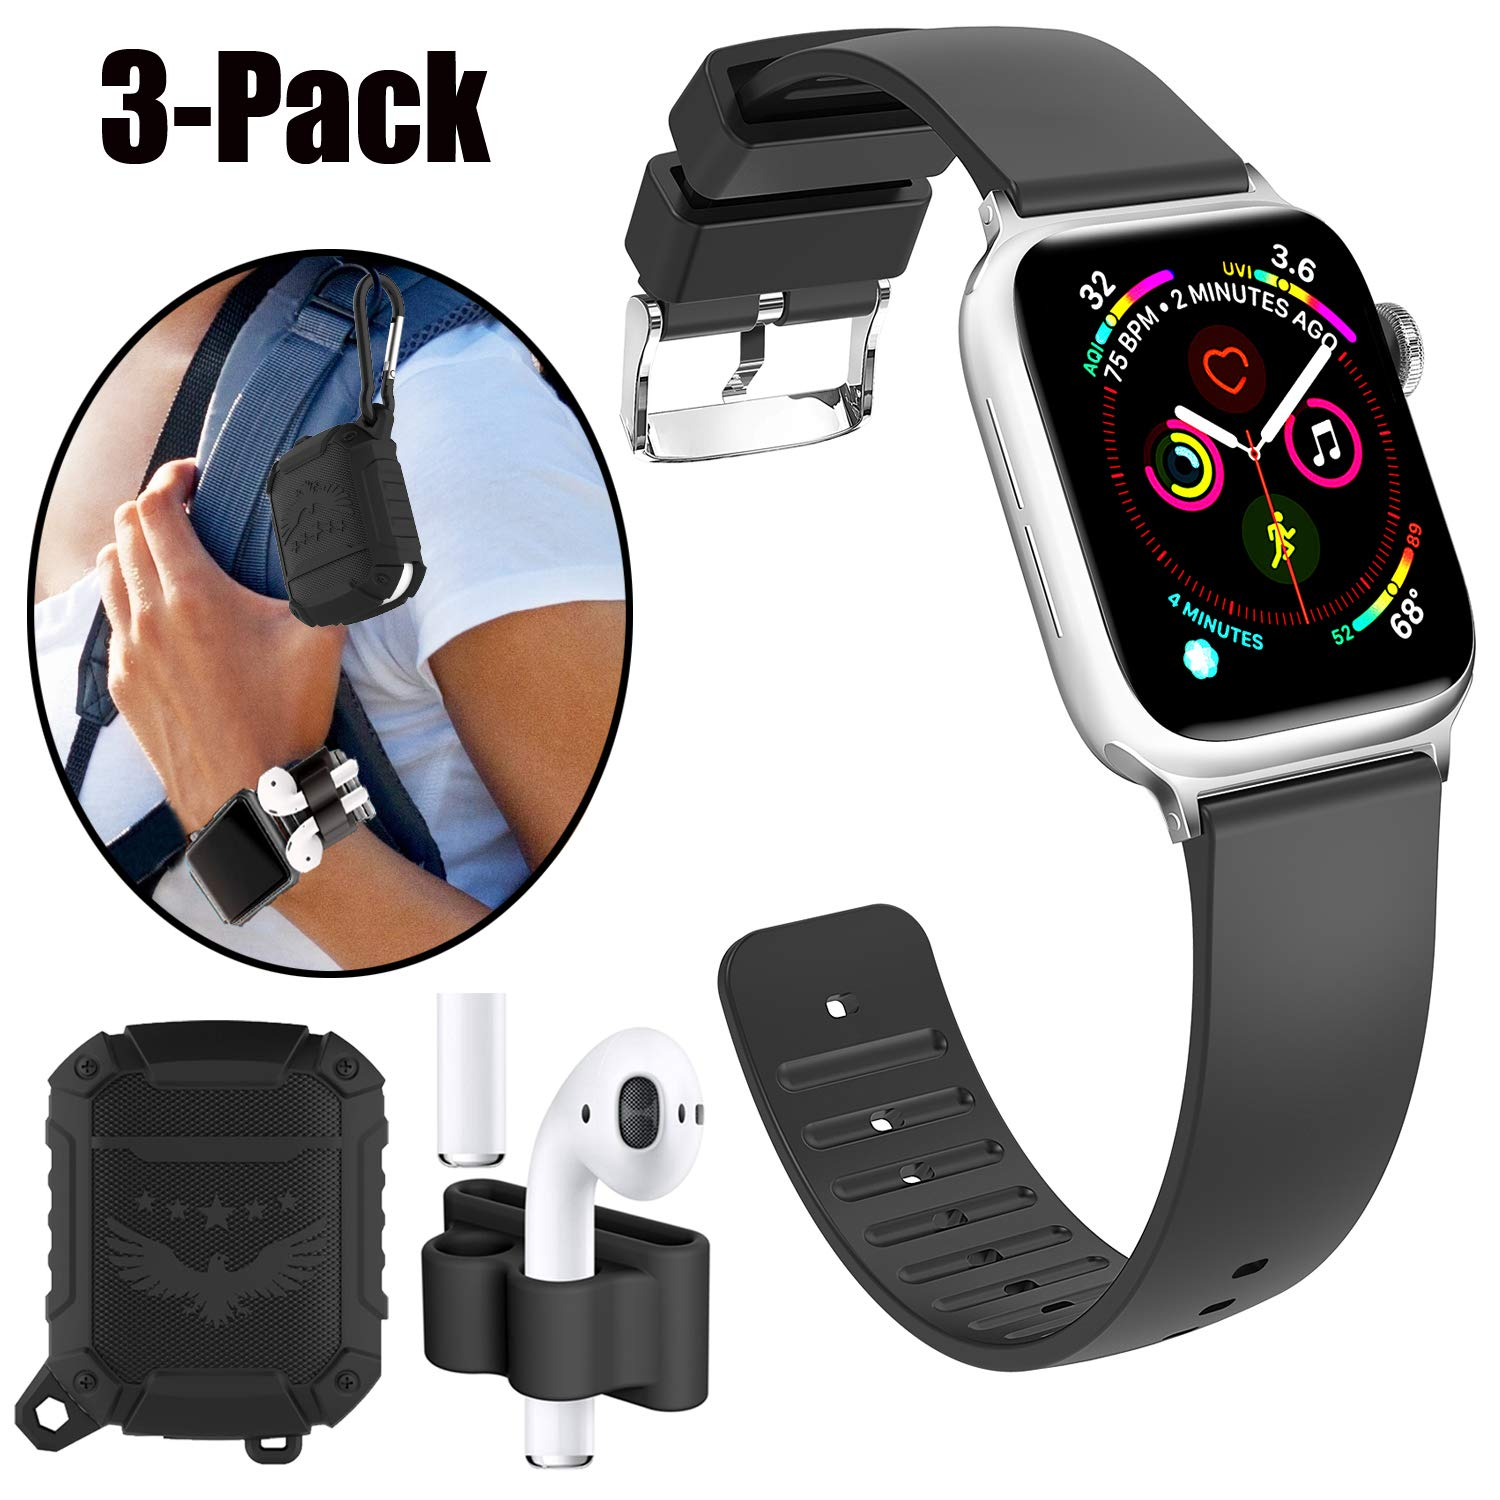 Apple Airpods & Watch Sport Accessories Set-----Airpods case+Airpods holder+Apple watch band